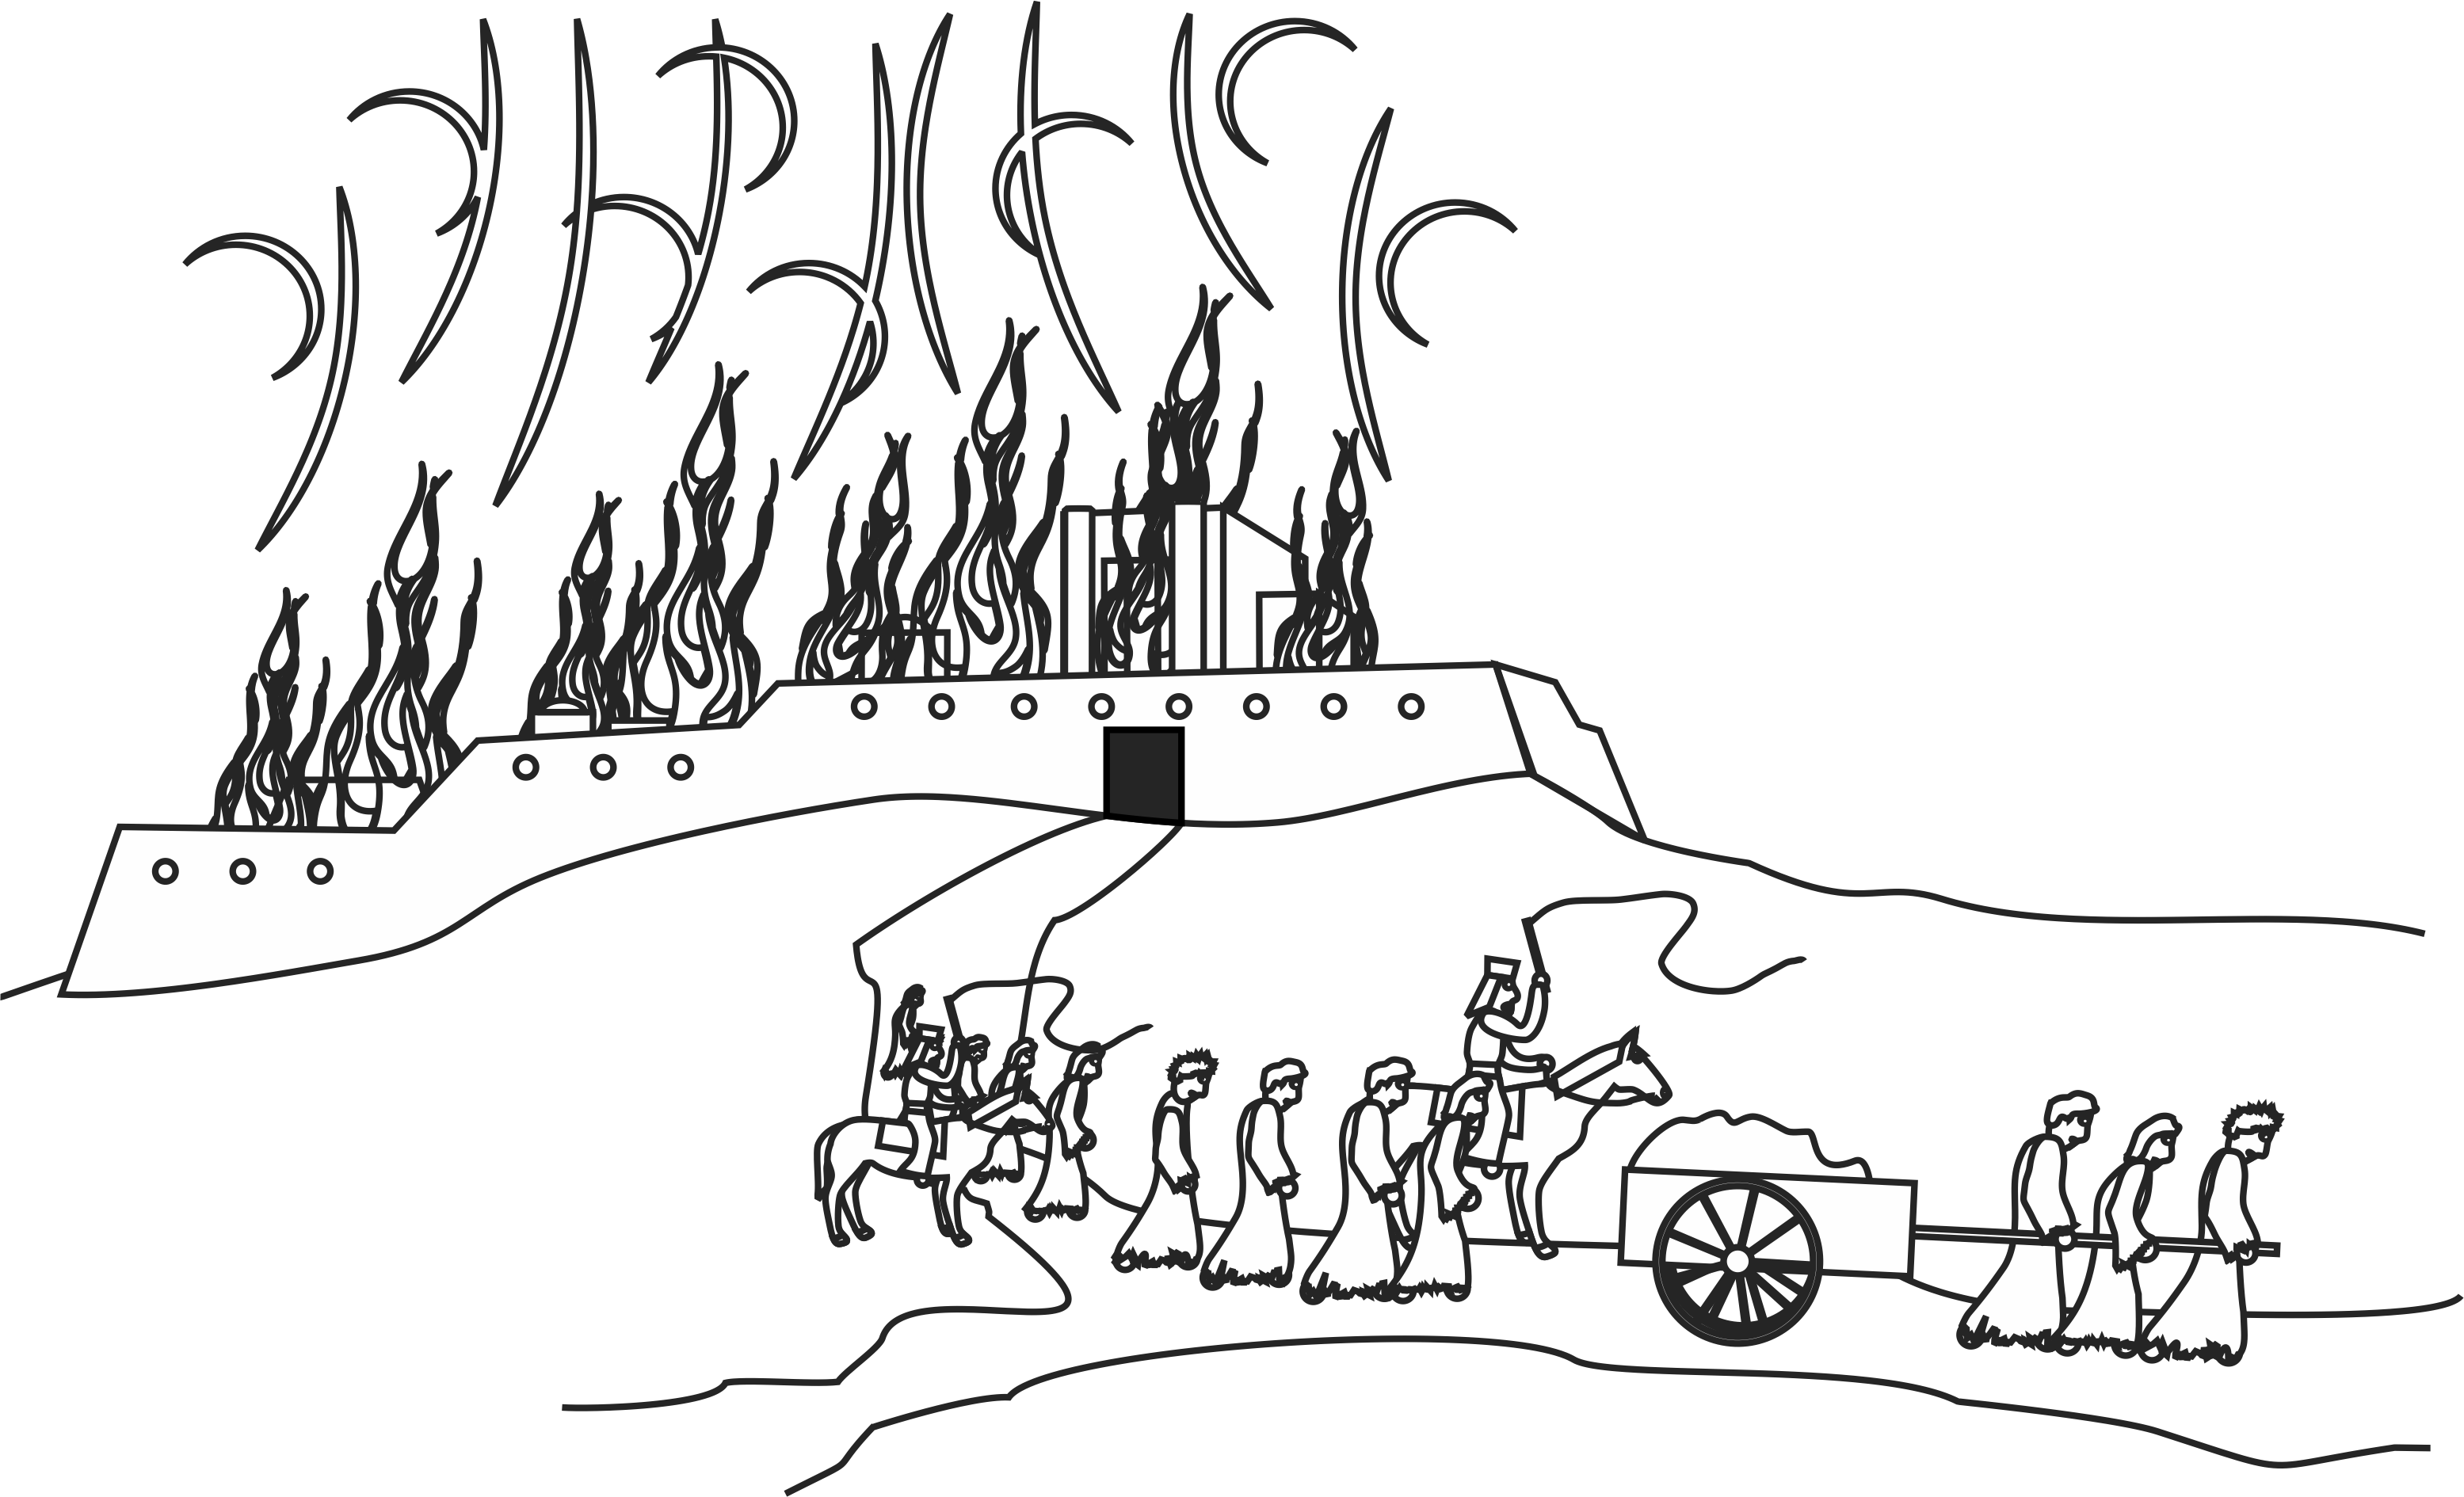 city of jerusalem coloring pages - photo#18